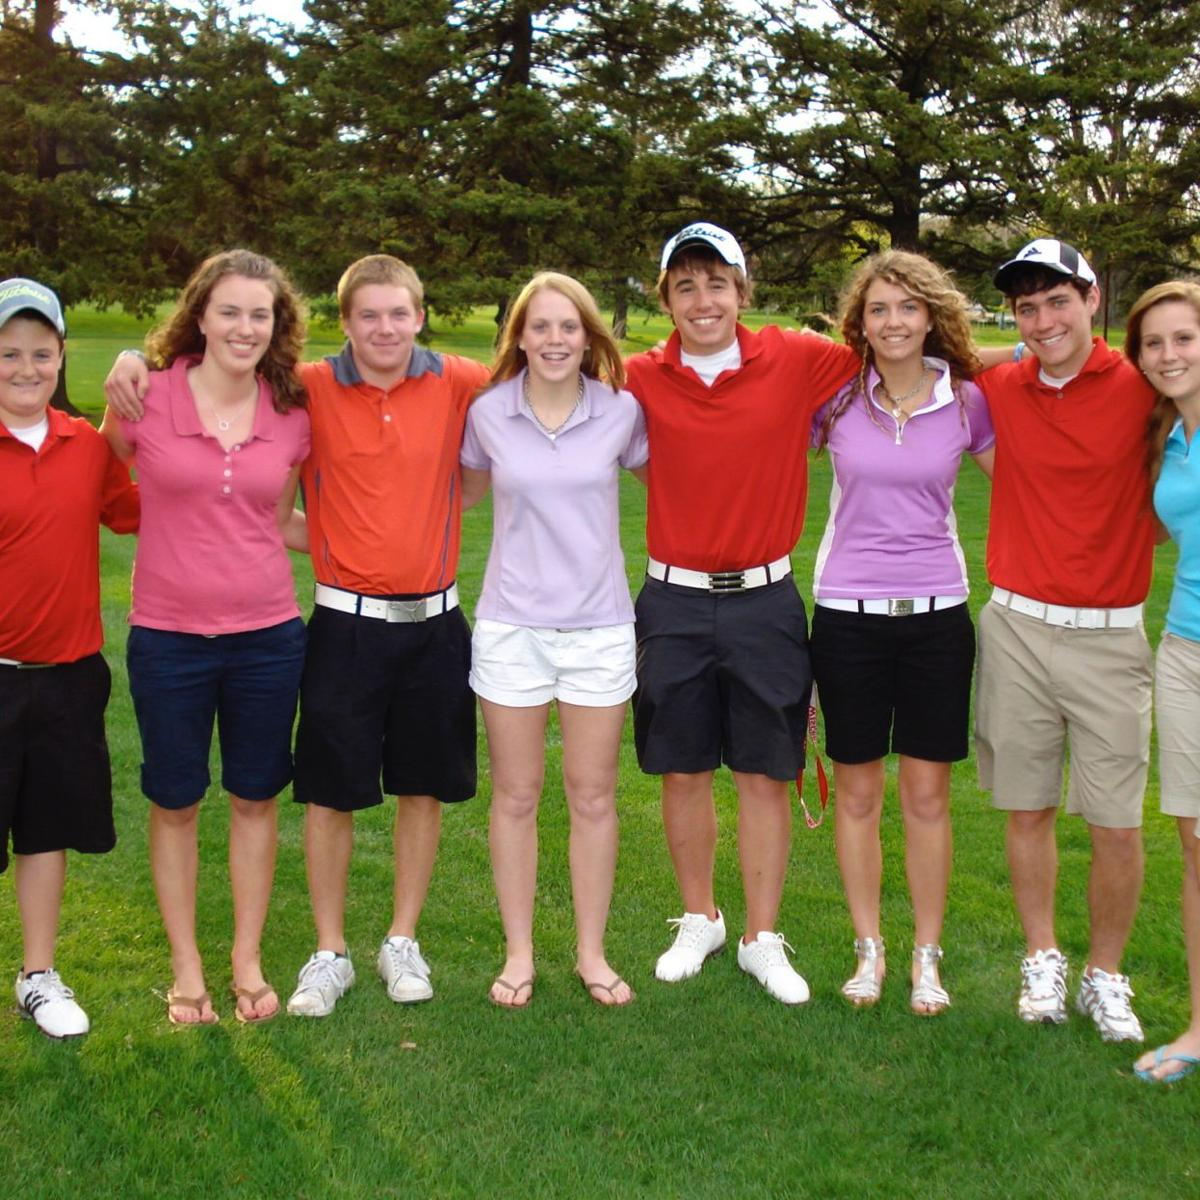 In memory of Michael Luedtke, upcoming event bearing his name will promote fun like the late Madison West golfer did